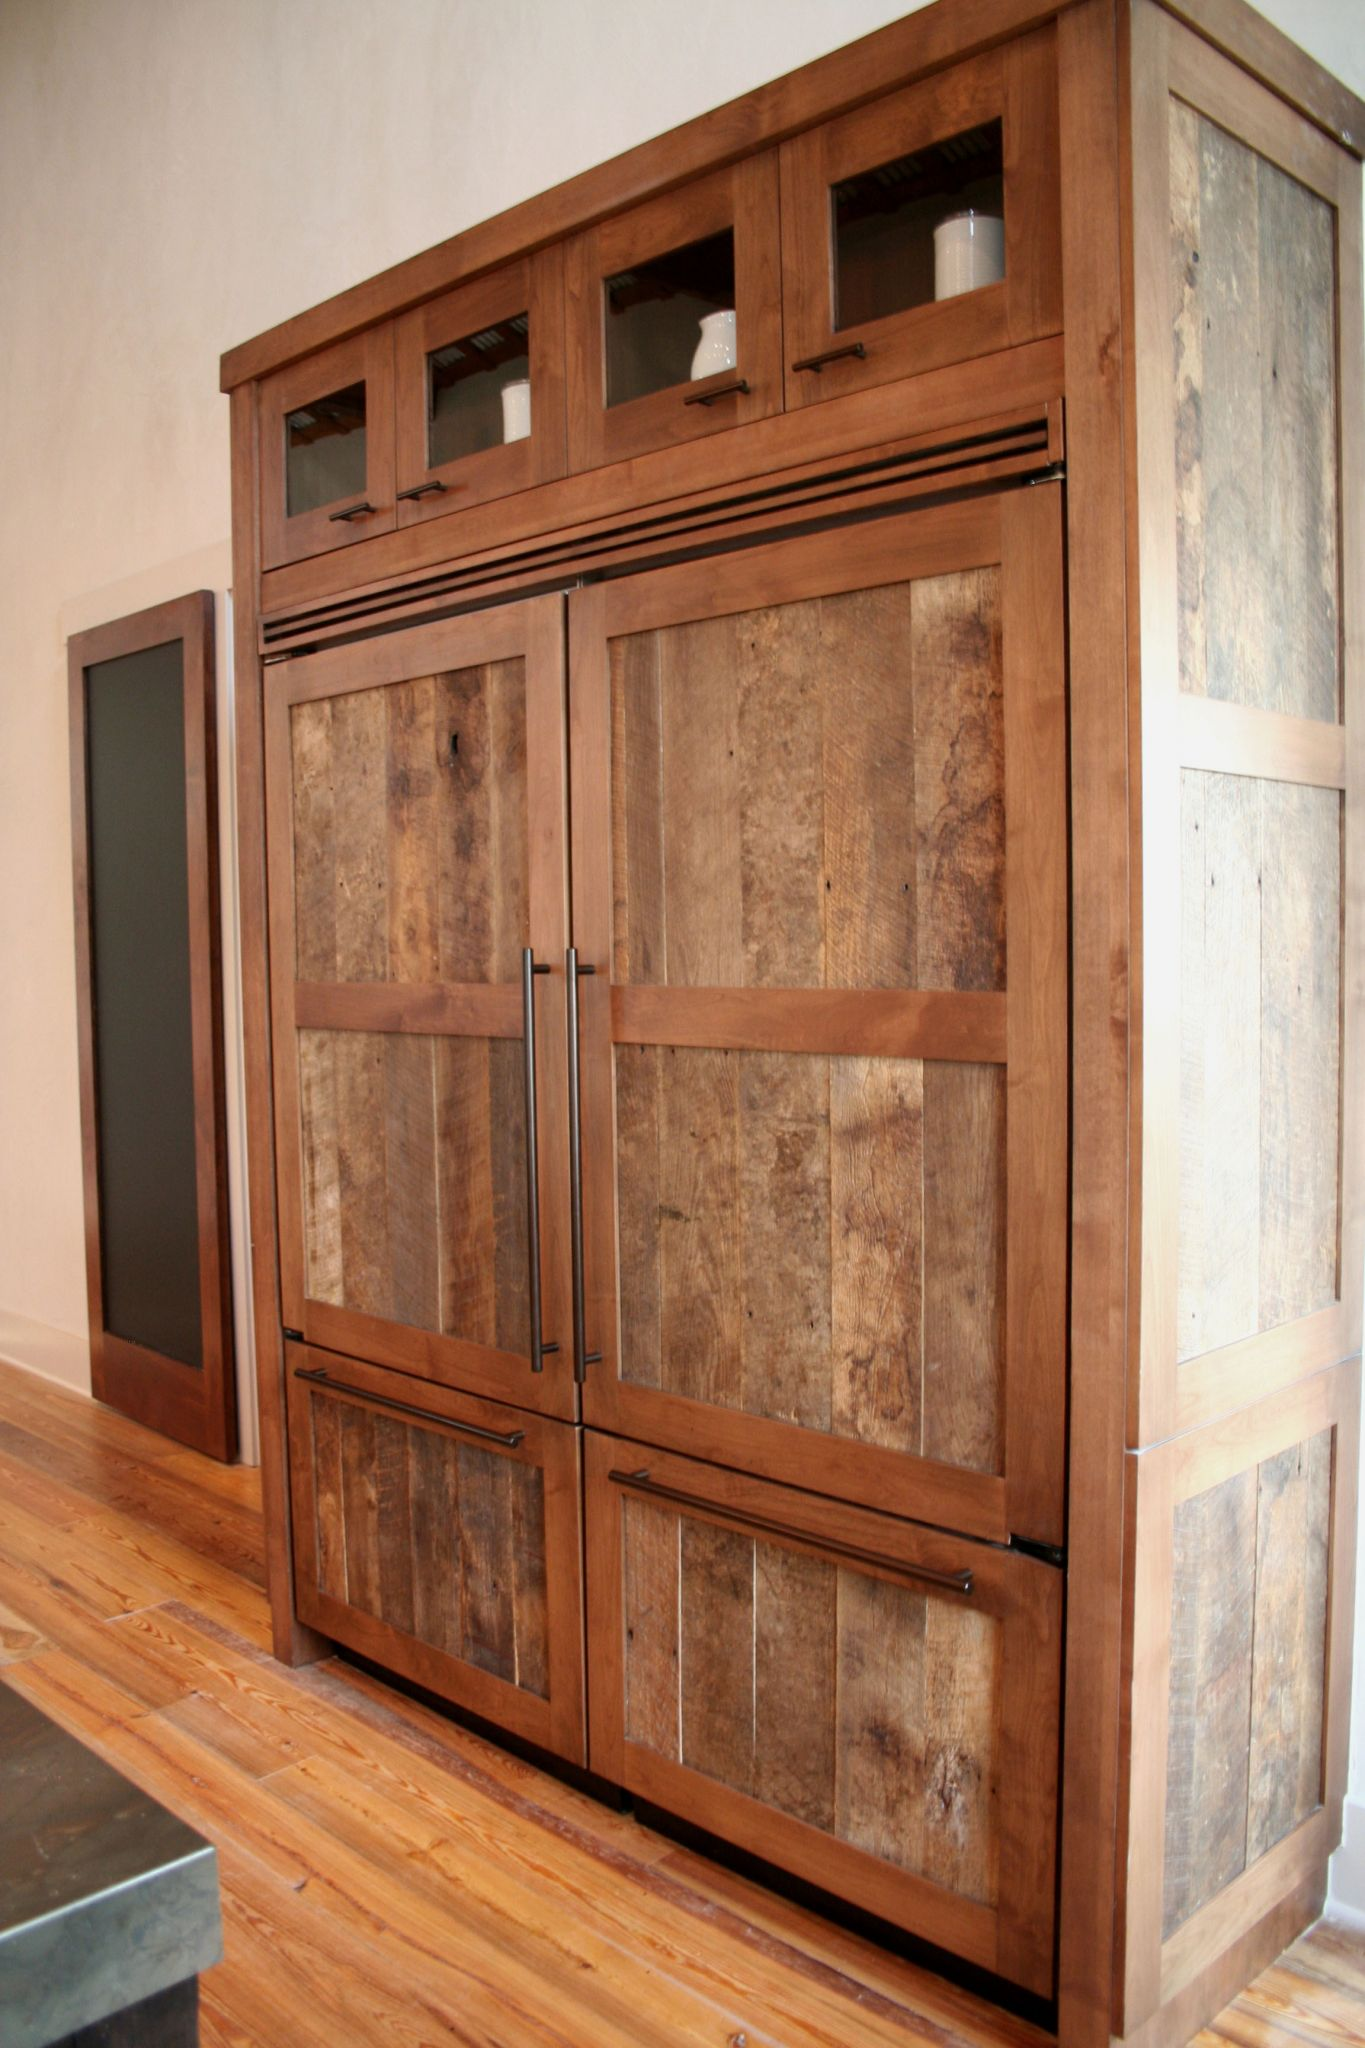 Crystal kitchen cabinets bkc kitchen bath - Cabinet made from old doors ...